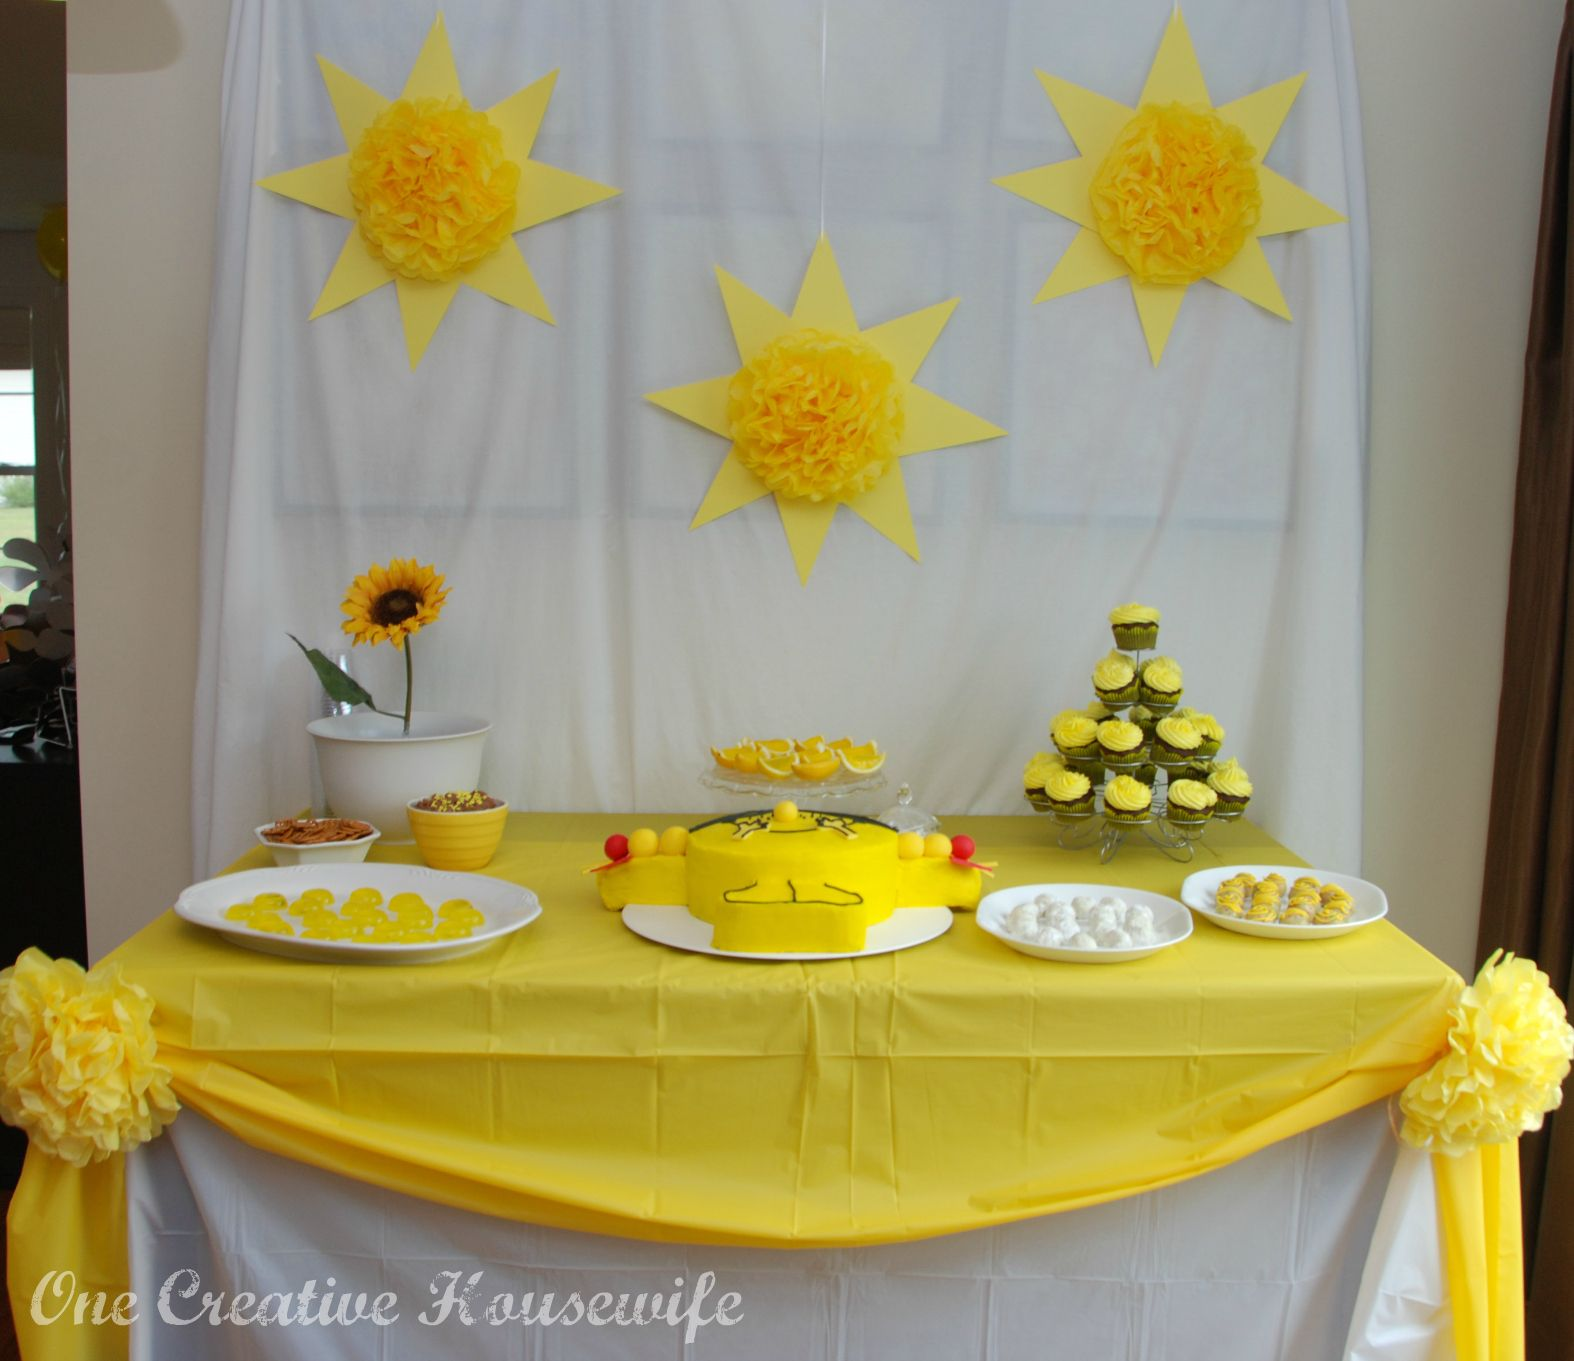 Birthday table decorations boy - Inspiring Ideas For Stunning Table Decorations For Birthdays Excellent Decorations Design Awesome Party Decorations With Light Yellow Sun Flower Ideas